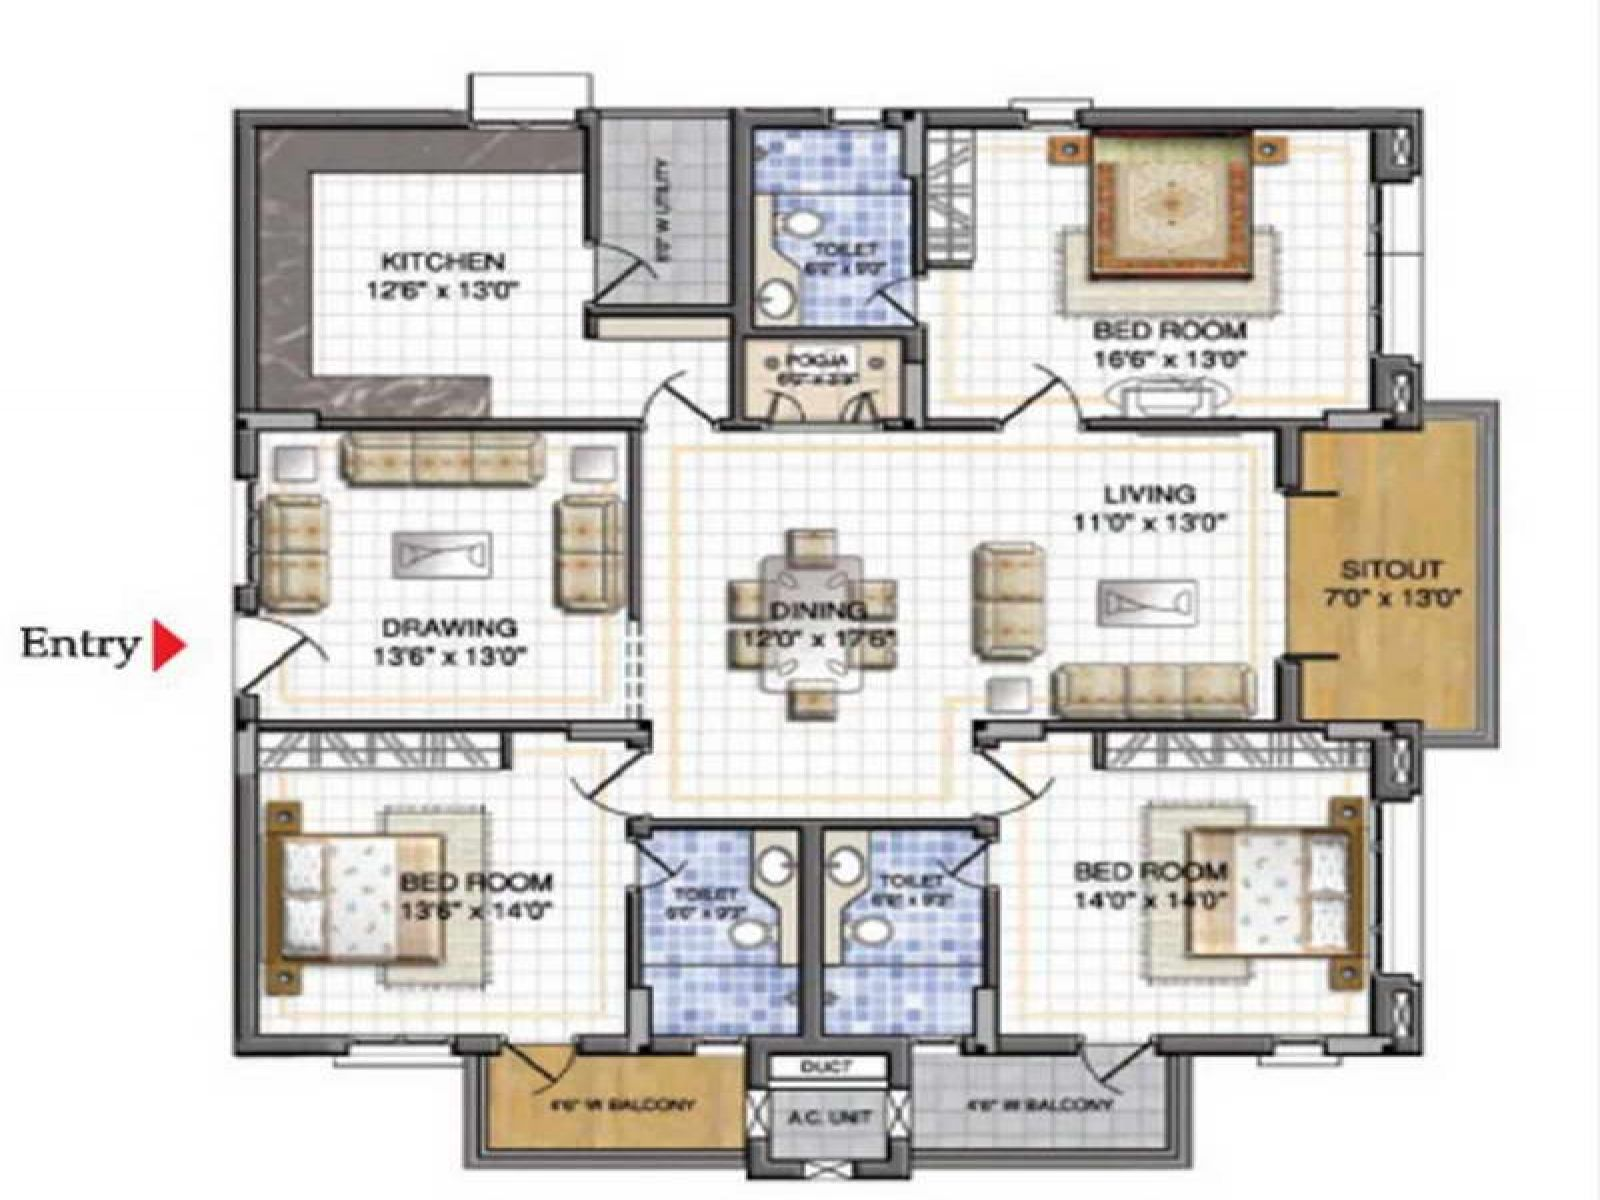 Sweet home 3d plans google search house designs pinterest layout online house plans Free house map design images